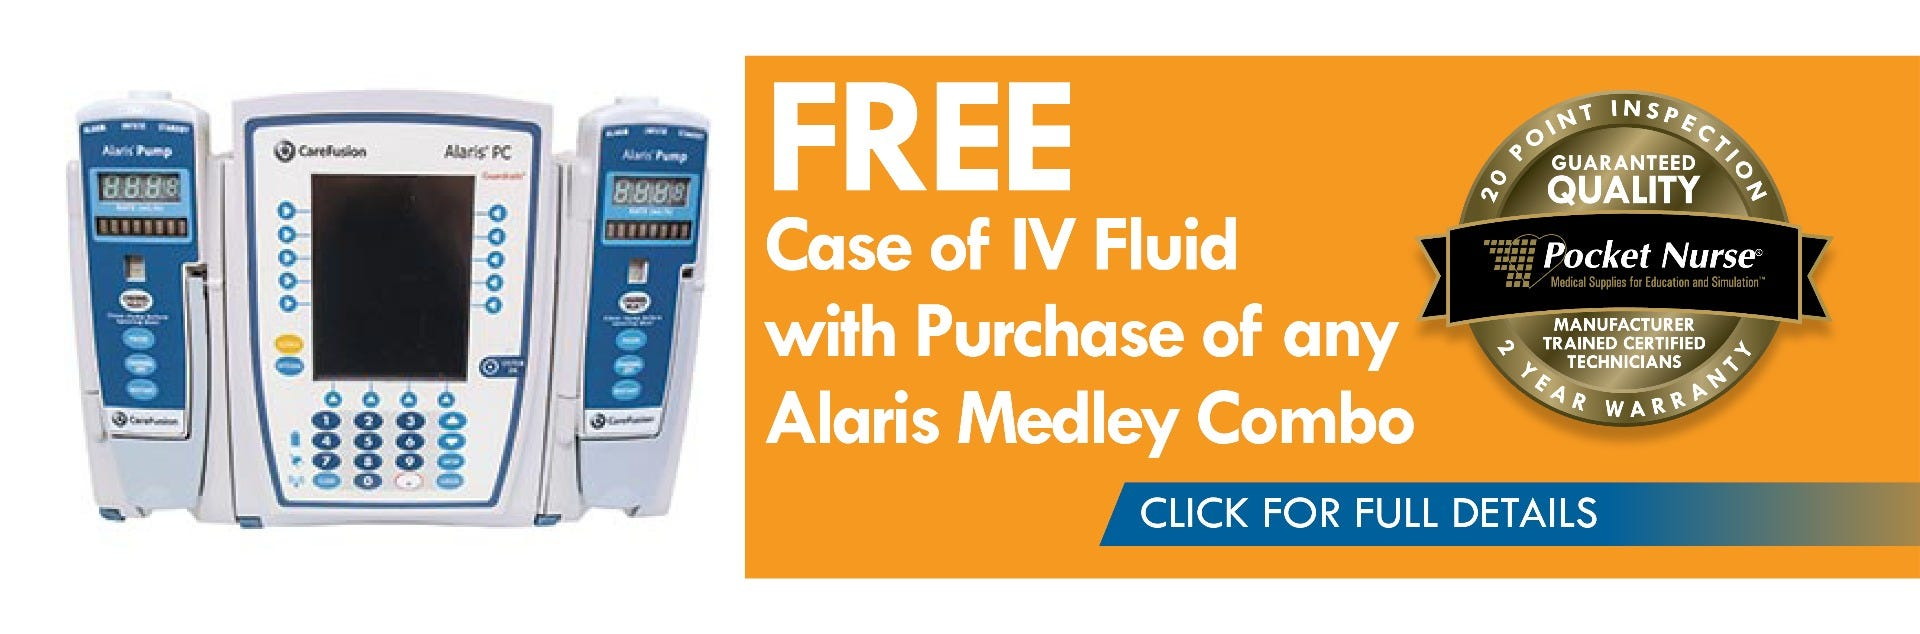 Free case of IV fluid